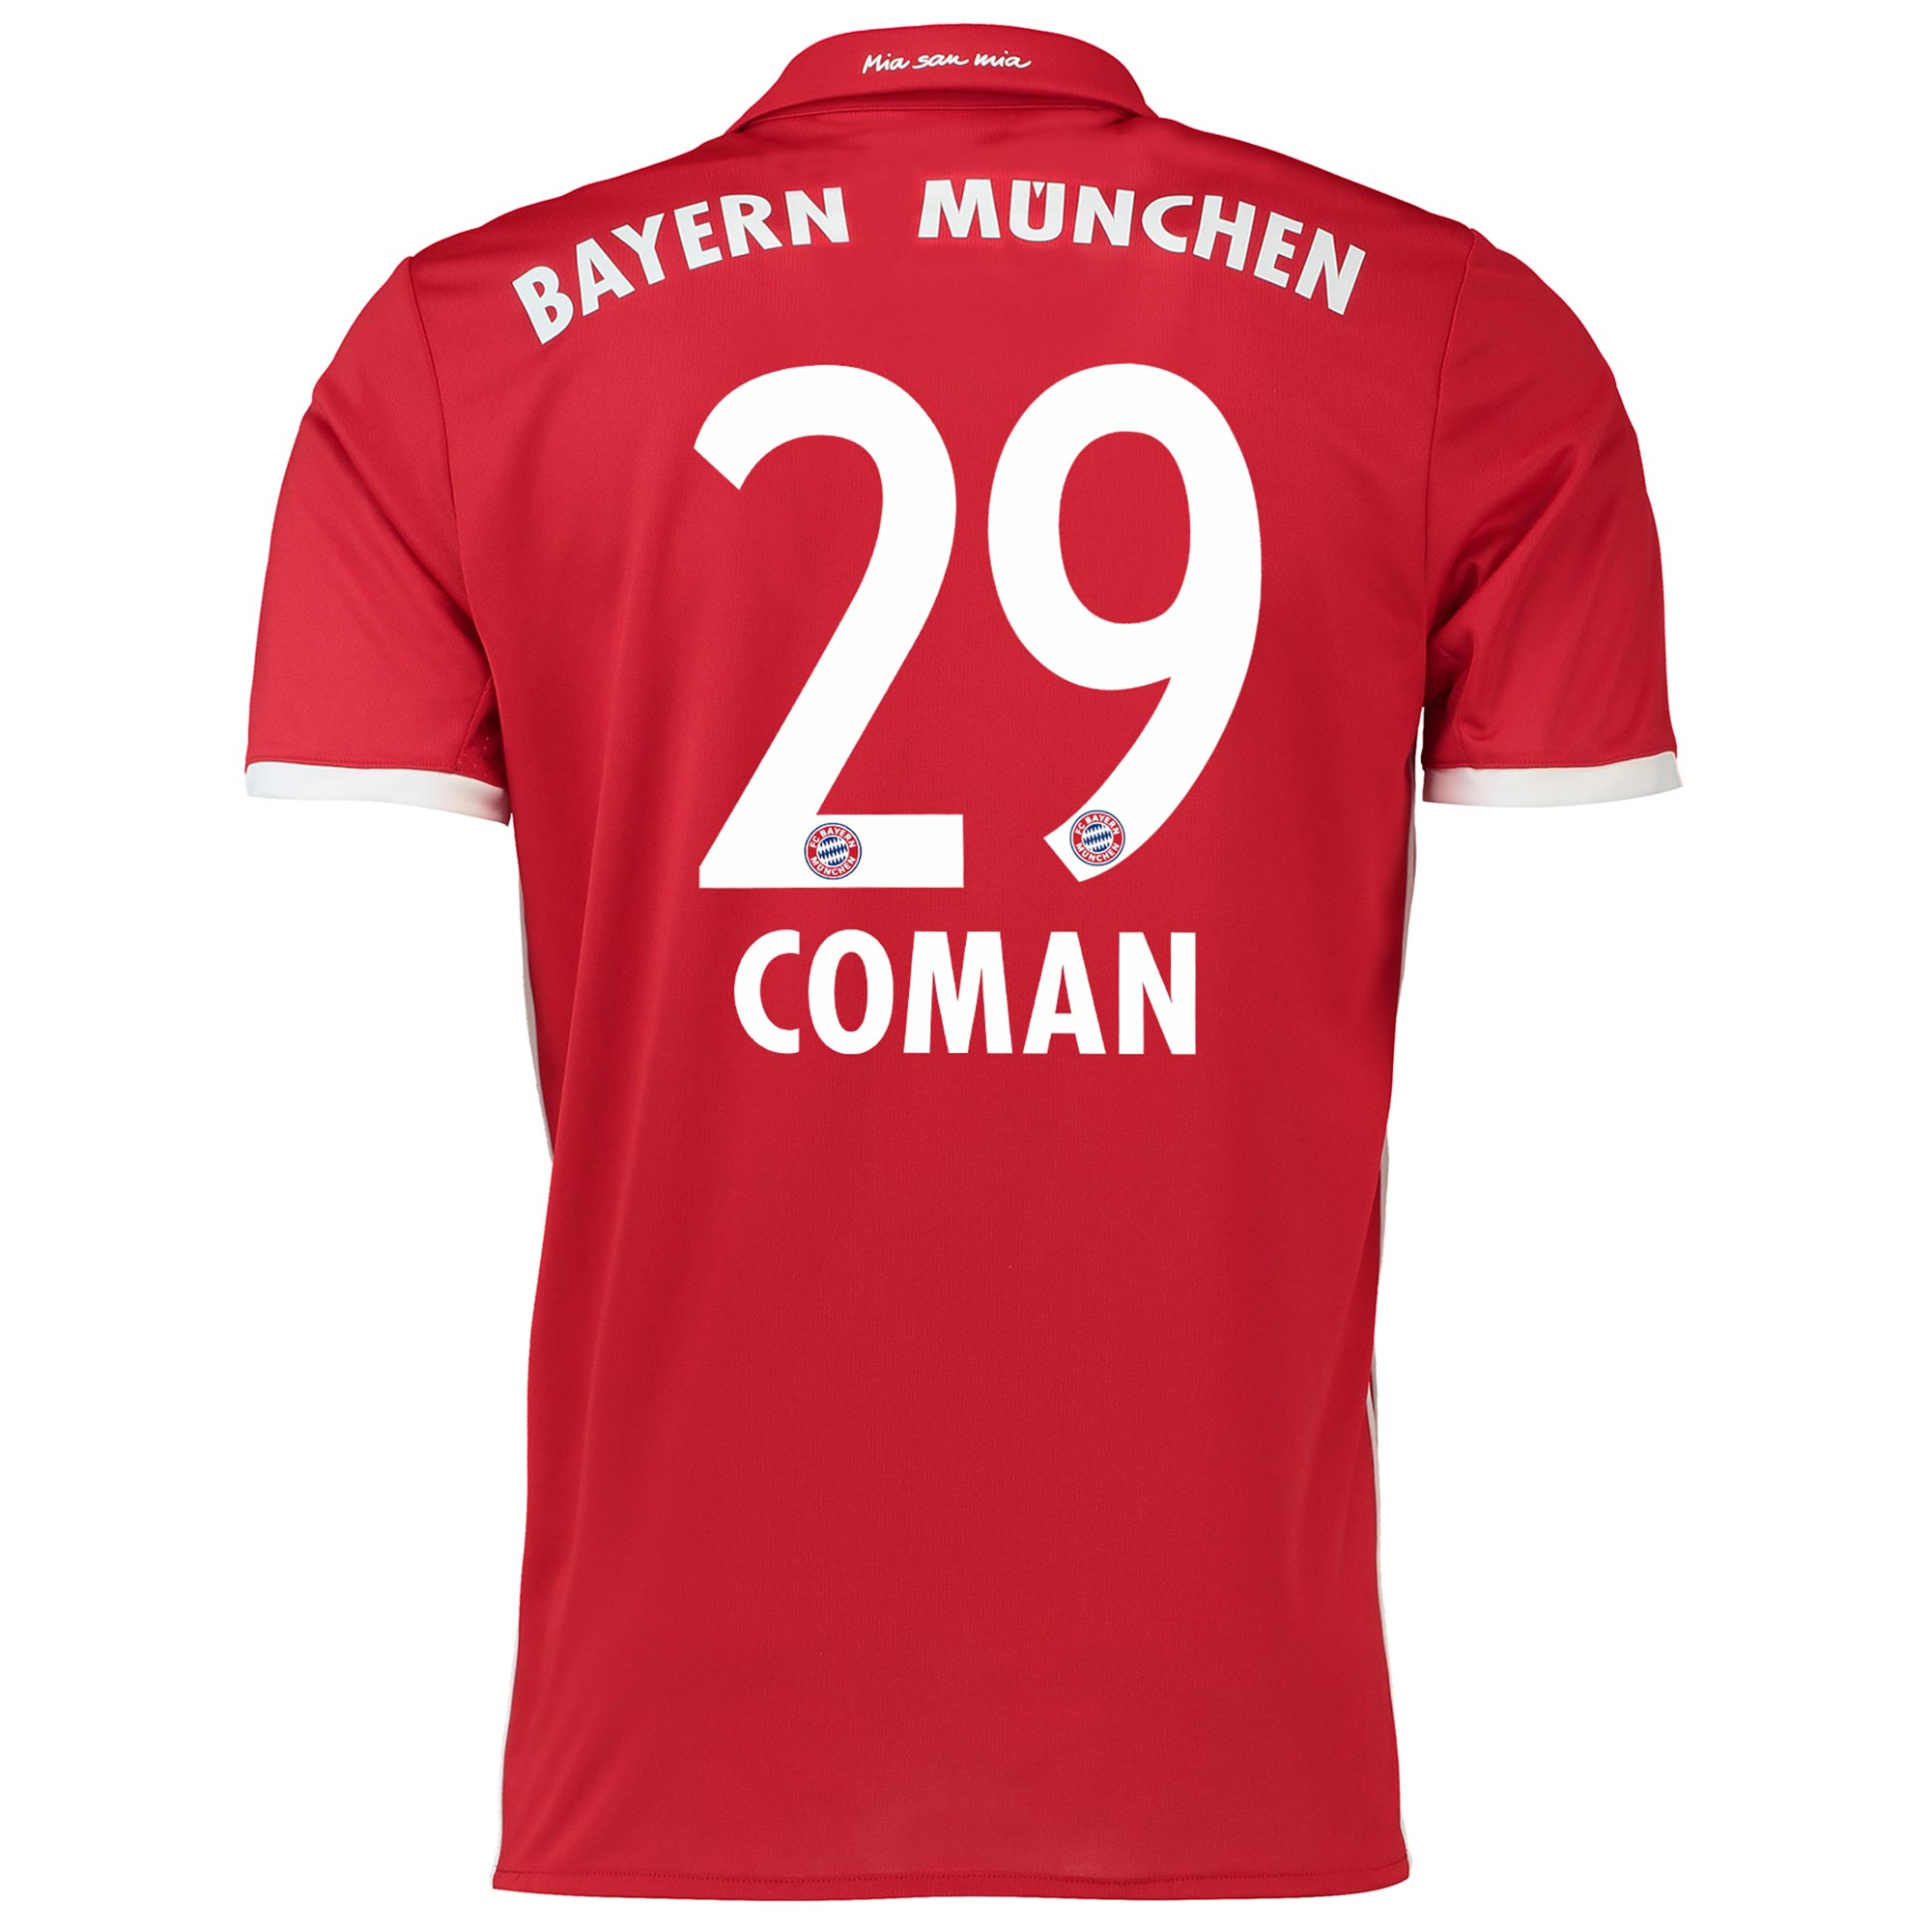 Image of Bayern Munich Home Shirt 2016-17 with Coman 29 printing, Red